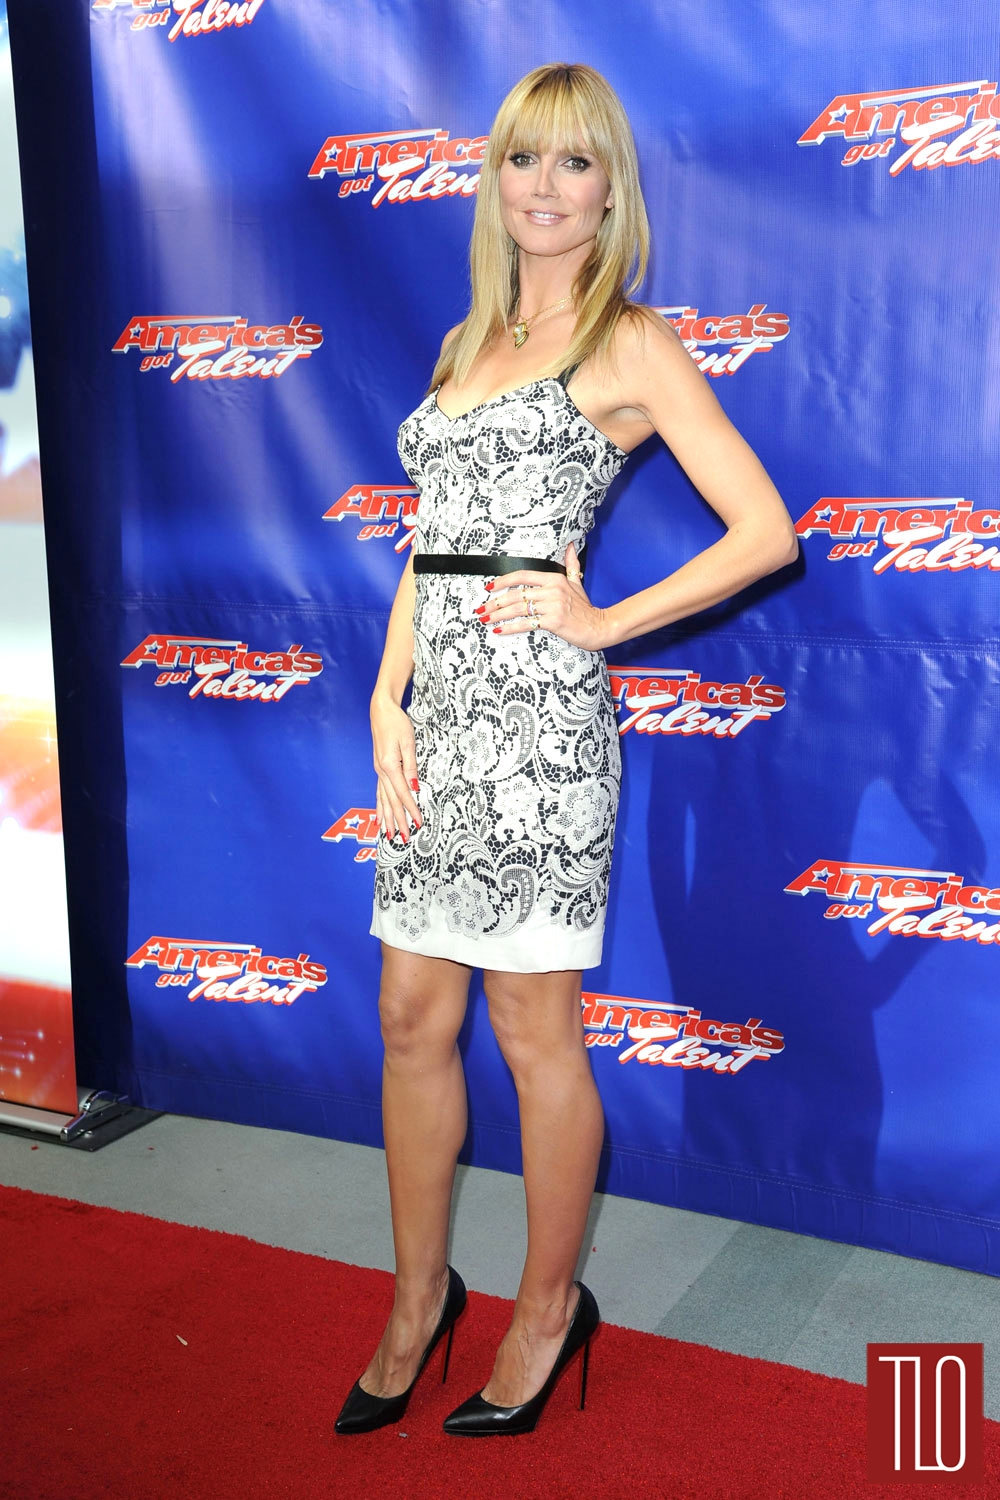 Heidi-Klum-Dolce-Gabbana-Americas-Got-Talent-S9-Photocall-Tom-Lorenzo-Site-1